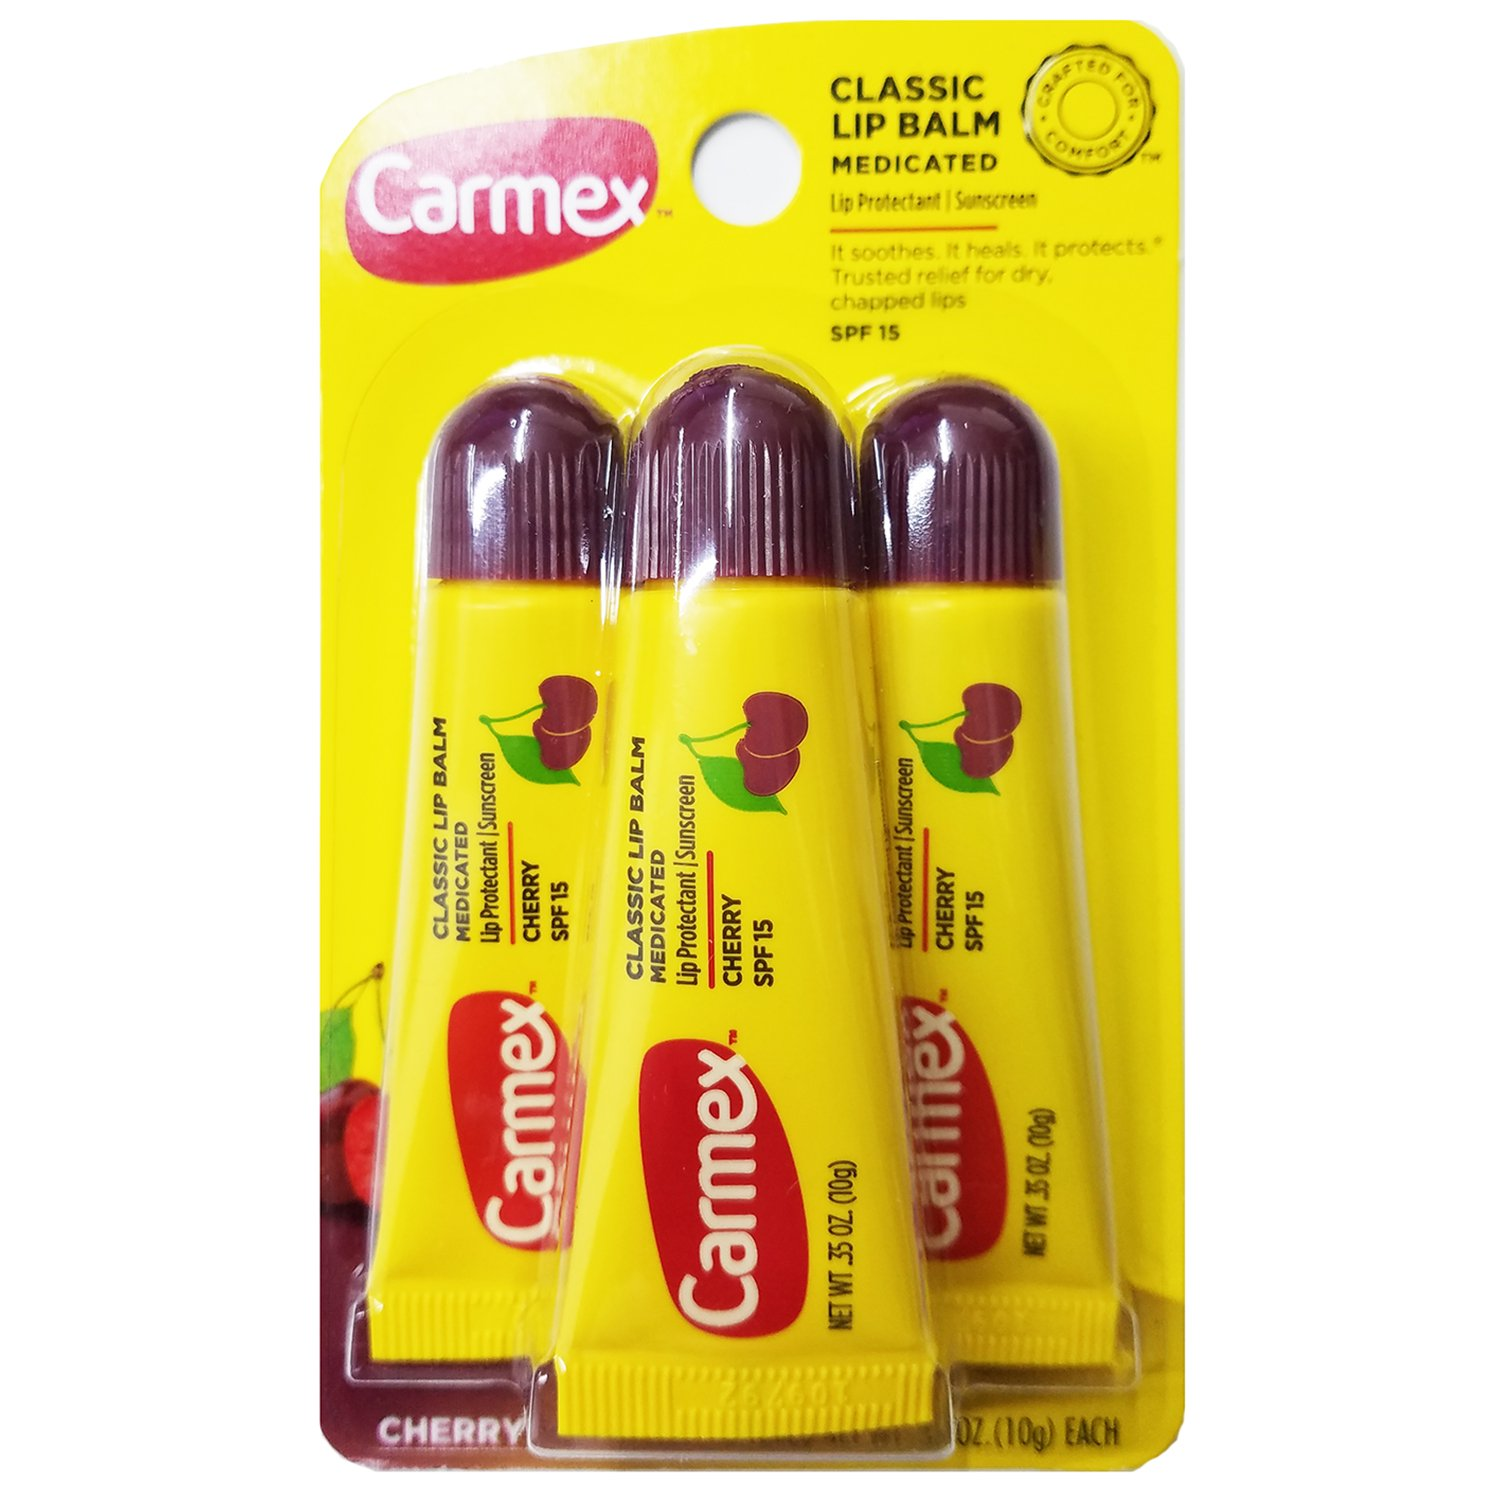 Carmex Classic Lip Balm Cherry 0.35oz, Medicated 3 Count Pack (2 Pack) Carma Laboratories Inc